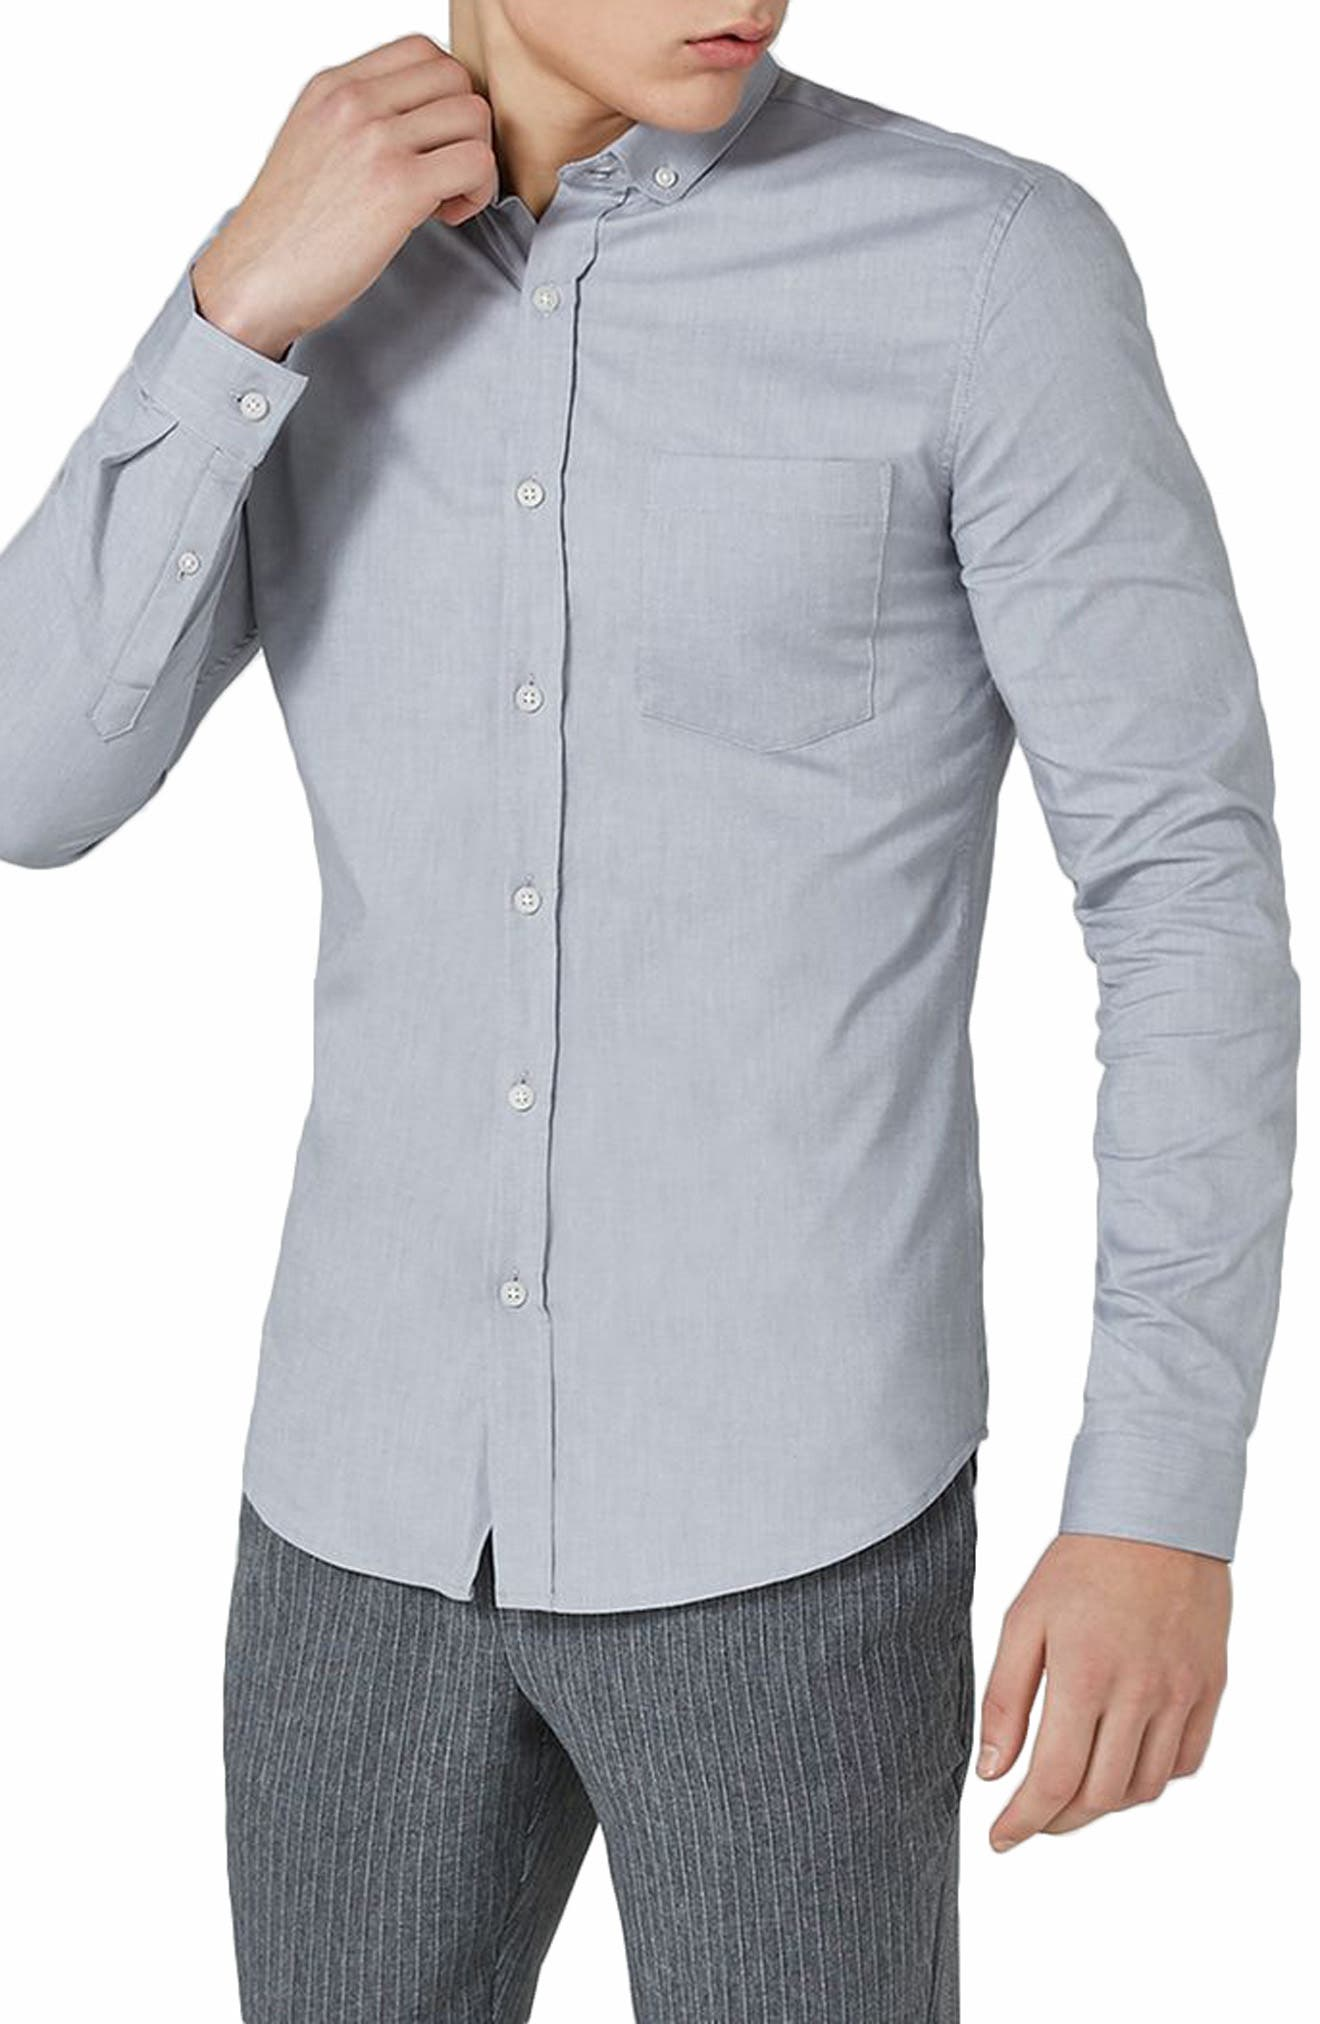 Muscle Fit Oxford Shirt,                         Main,                         color, GREY